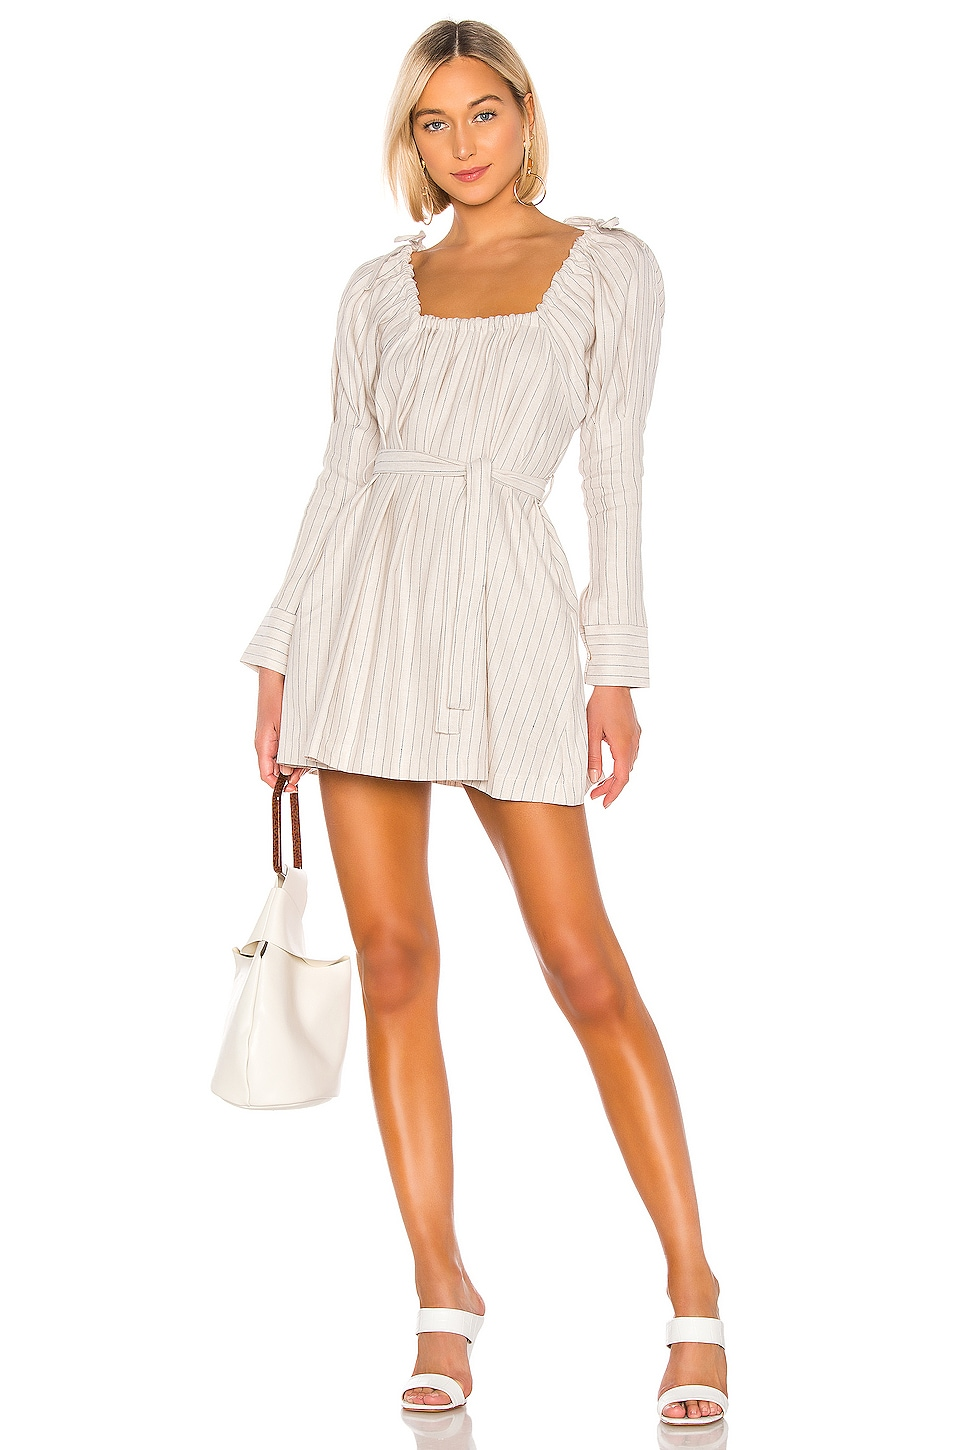 L'Academie The Celine Mini Dress in Beige & Navy Stripe